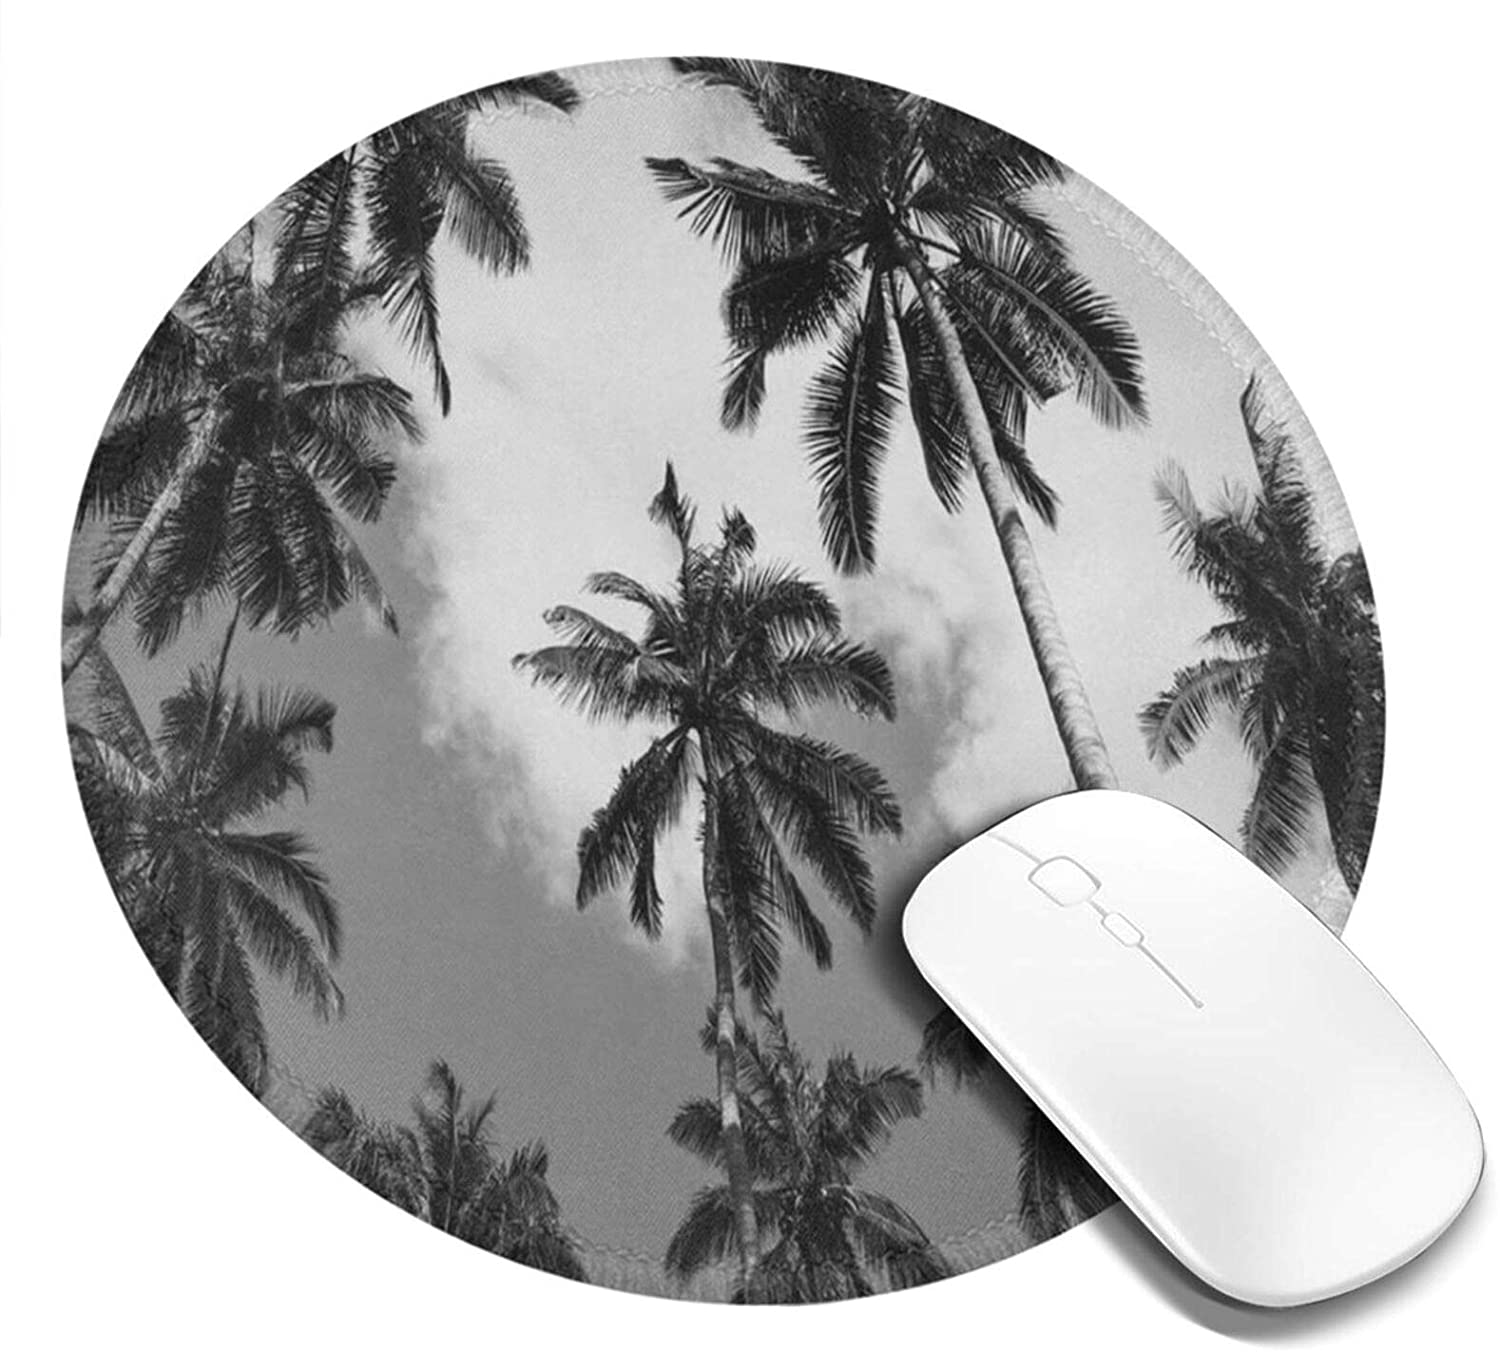 Mouse Pad Round for Kids Palm Tree Palm Tree Mini Cute Mouse Pad Mat Women Girls Cool Personalized Gaming Non Slip Mousepad for Computer Laptop Office Non Slip